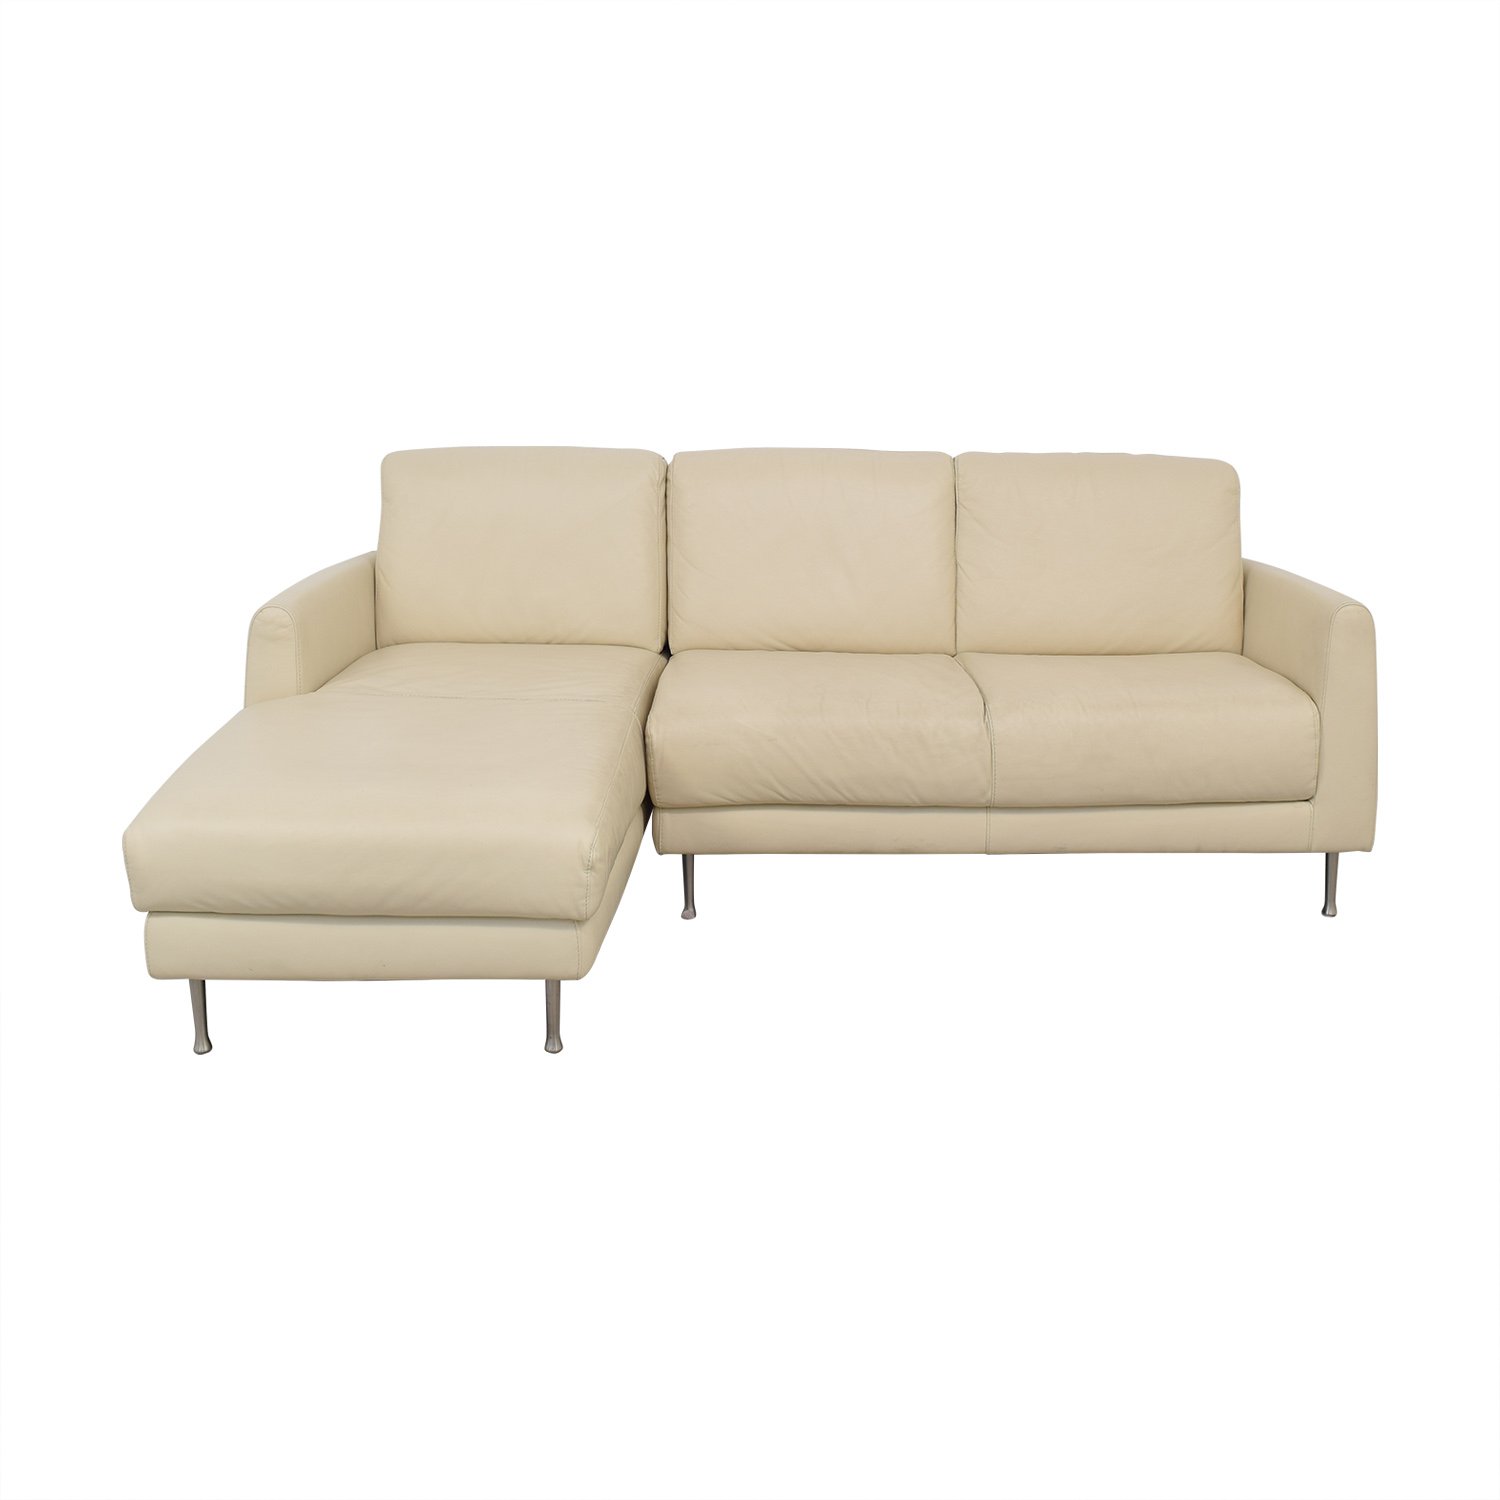 54 off ikea ikea leather sectional sofa sofas